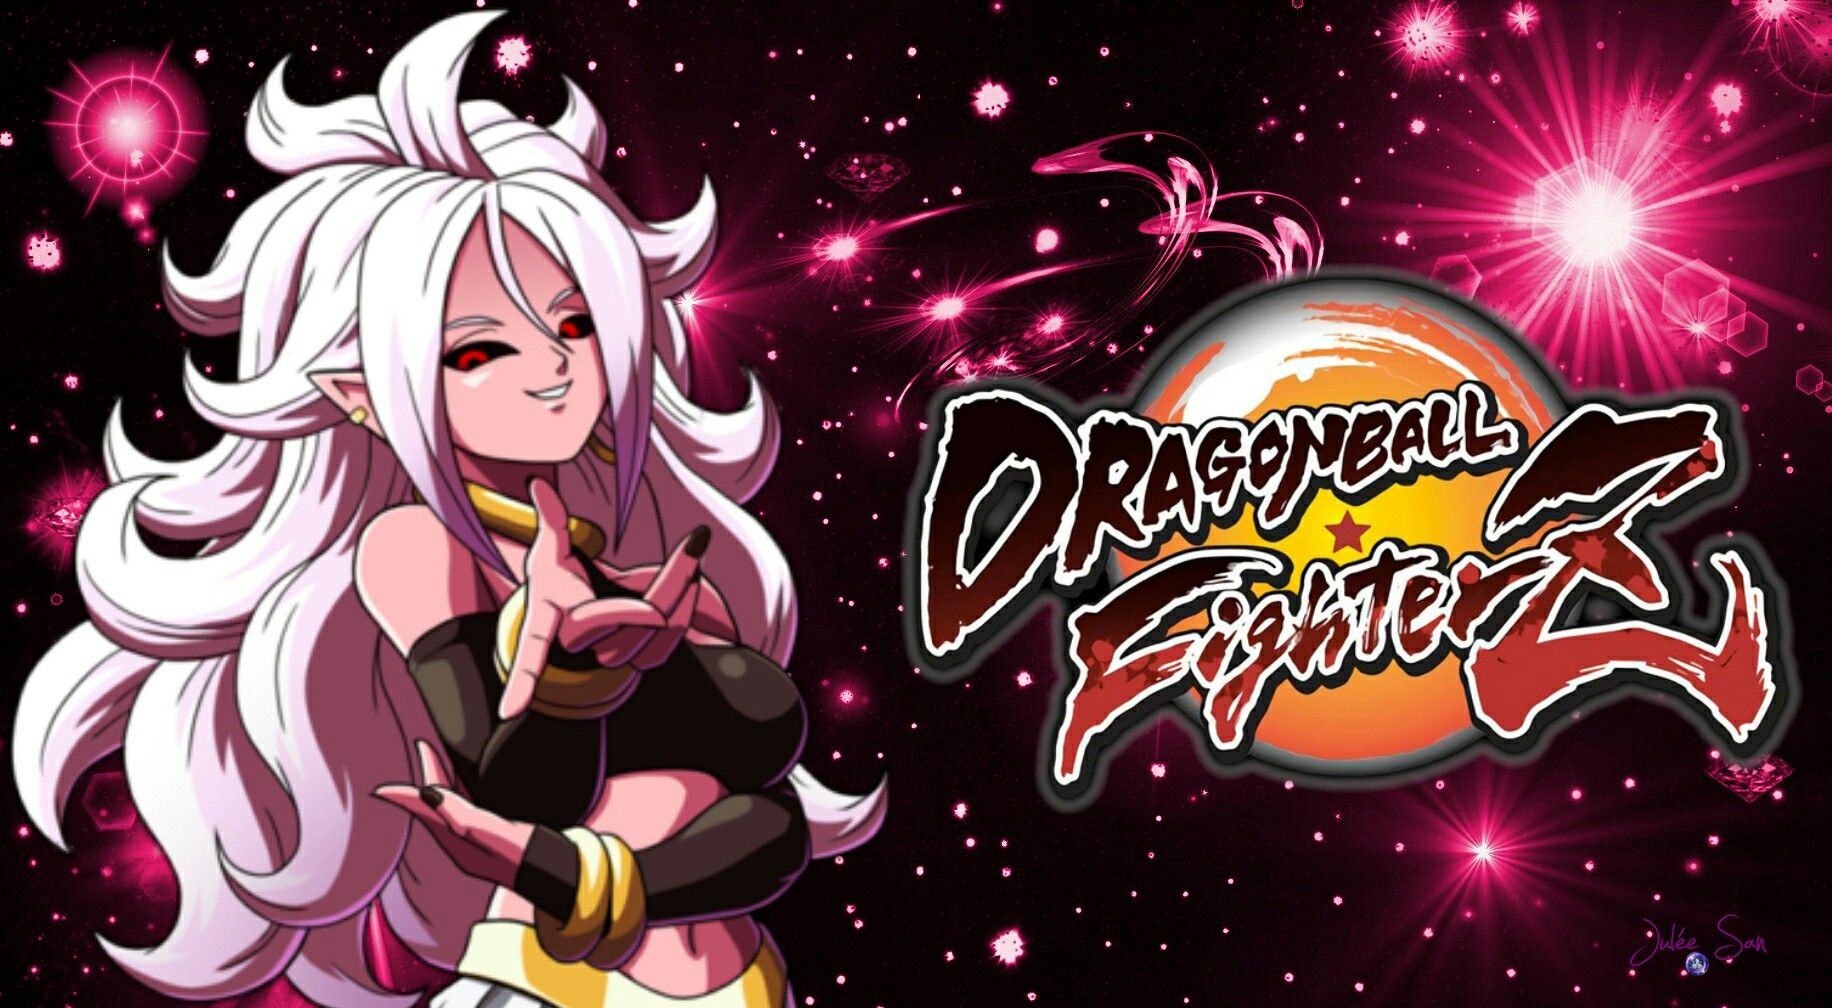 Majin android 21 dragonball fighterz Dragon ball, Dragon